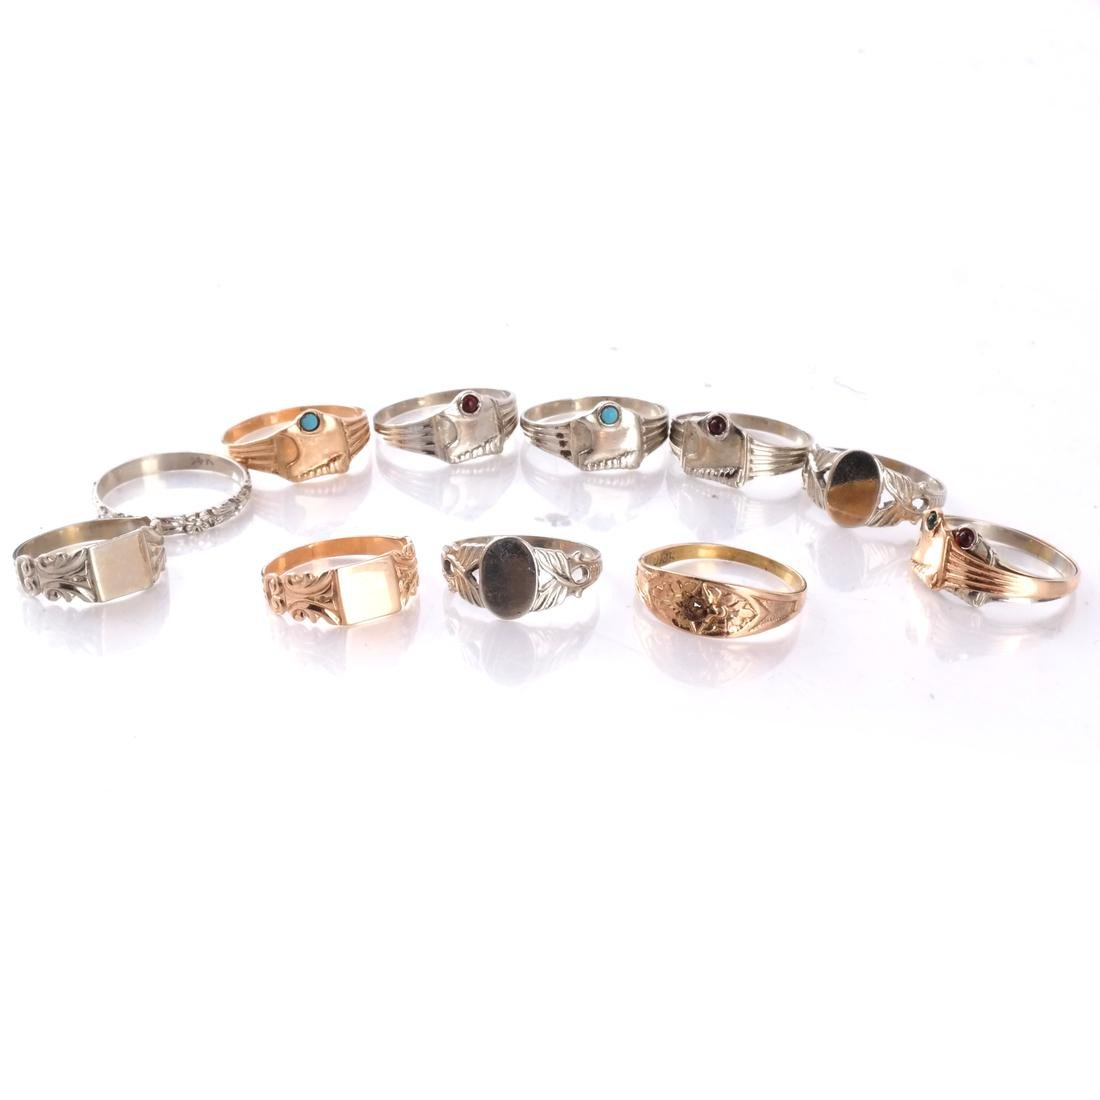 14k Baby's Rings in White and Yellow Gold